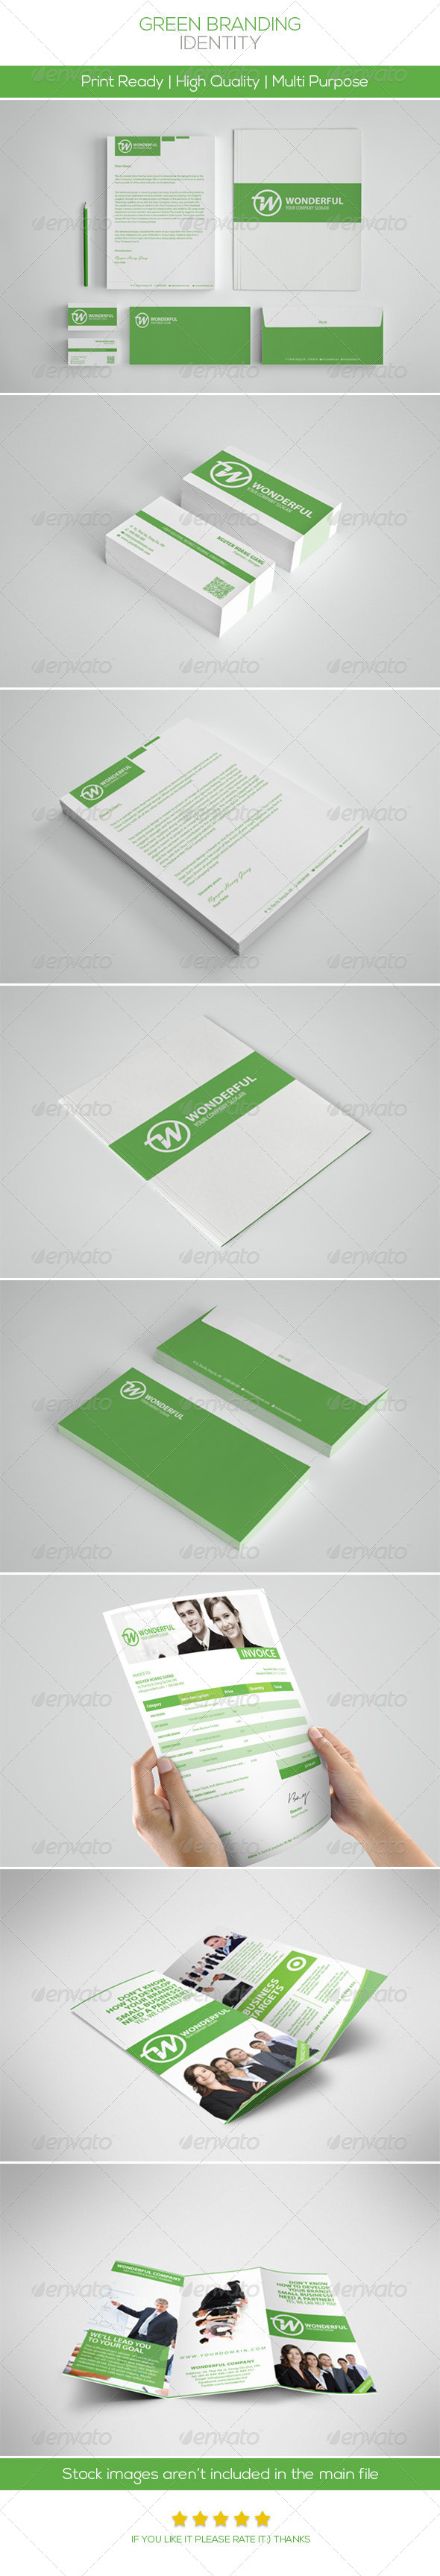 Green Branding Identity - Stationery Print Templates